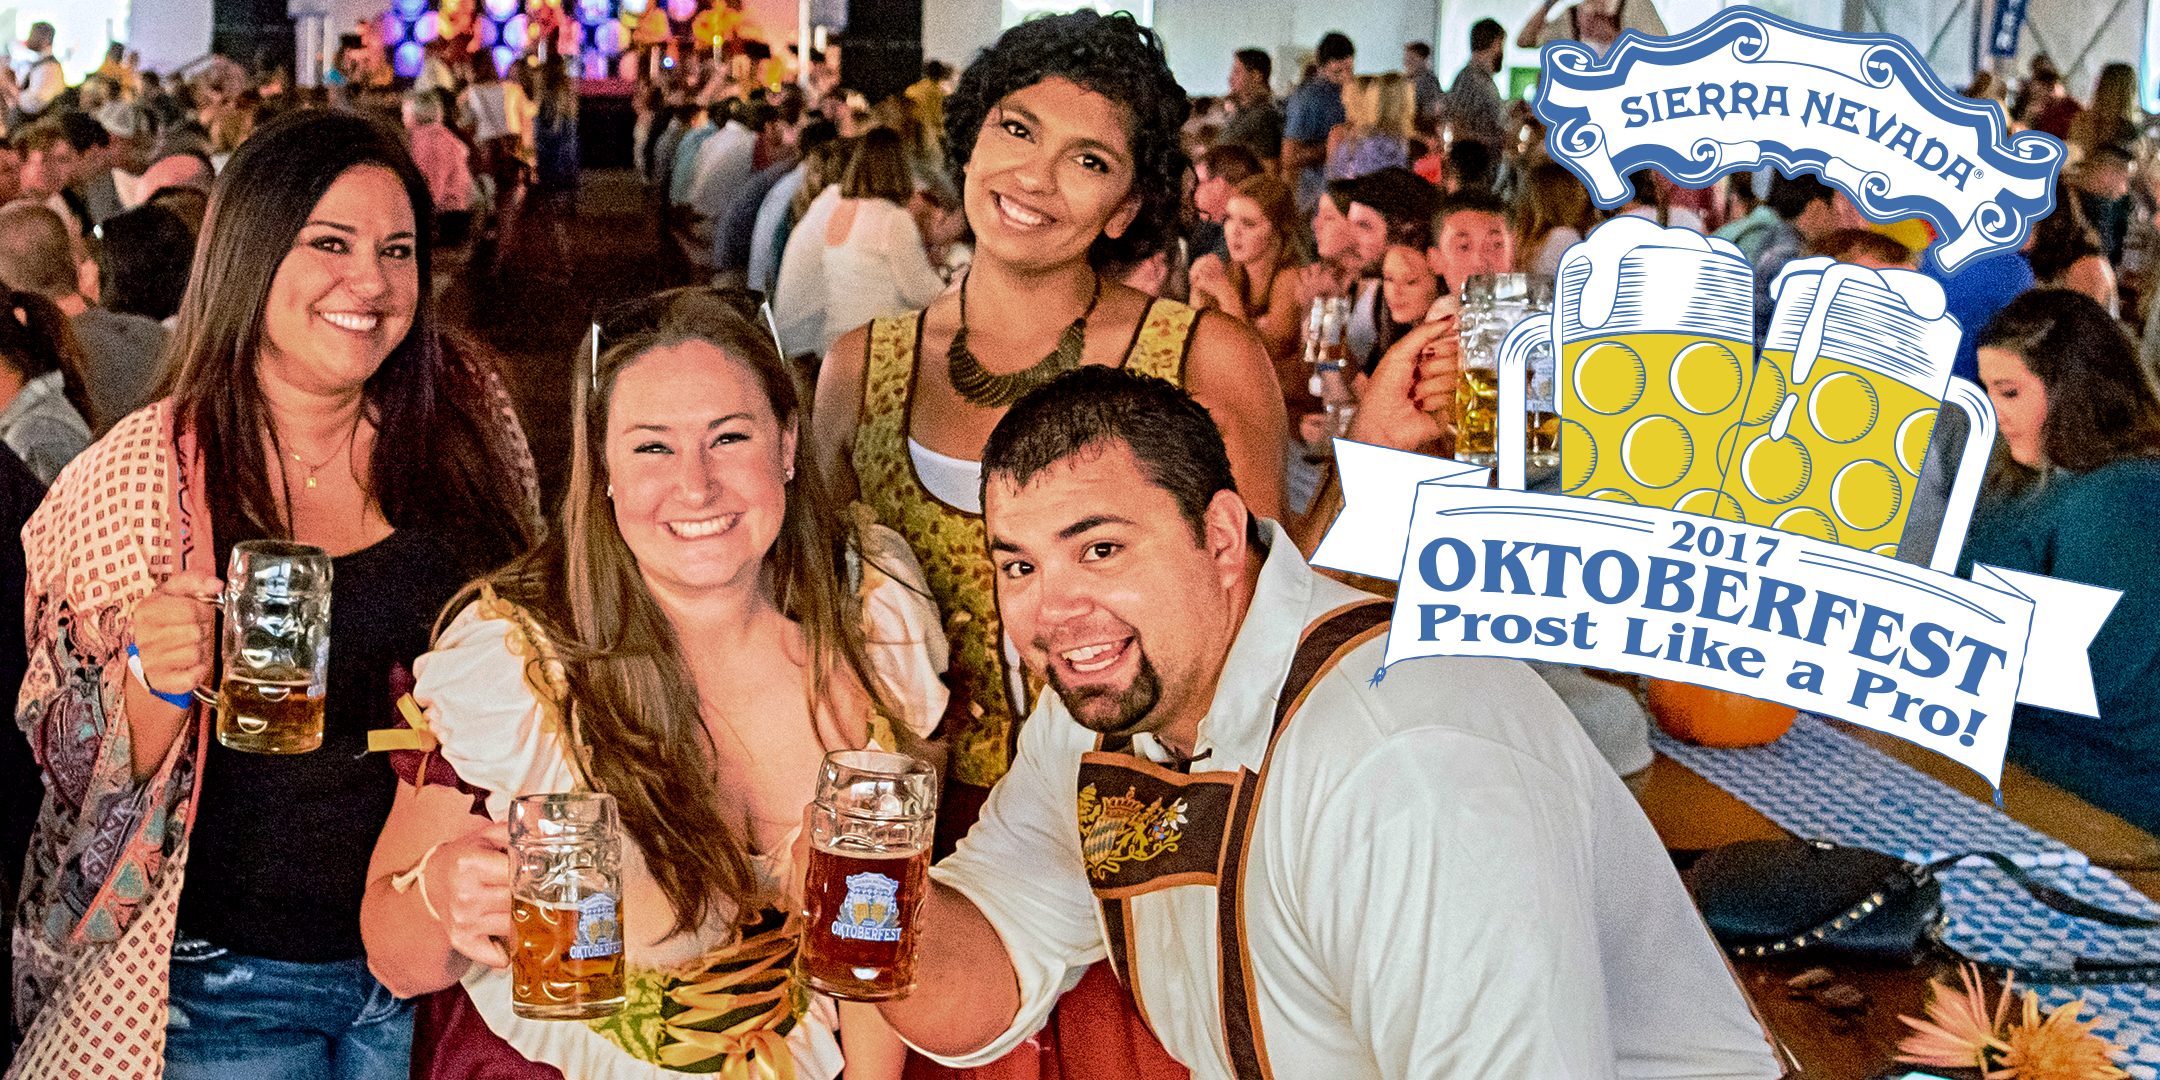 Oktoberfest Sat 10/07 - SOLD OUT - Chico, CA